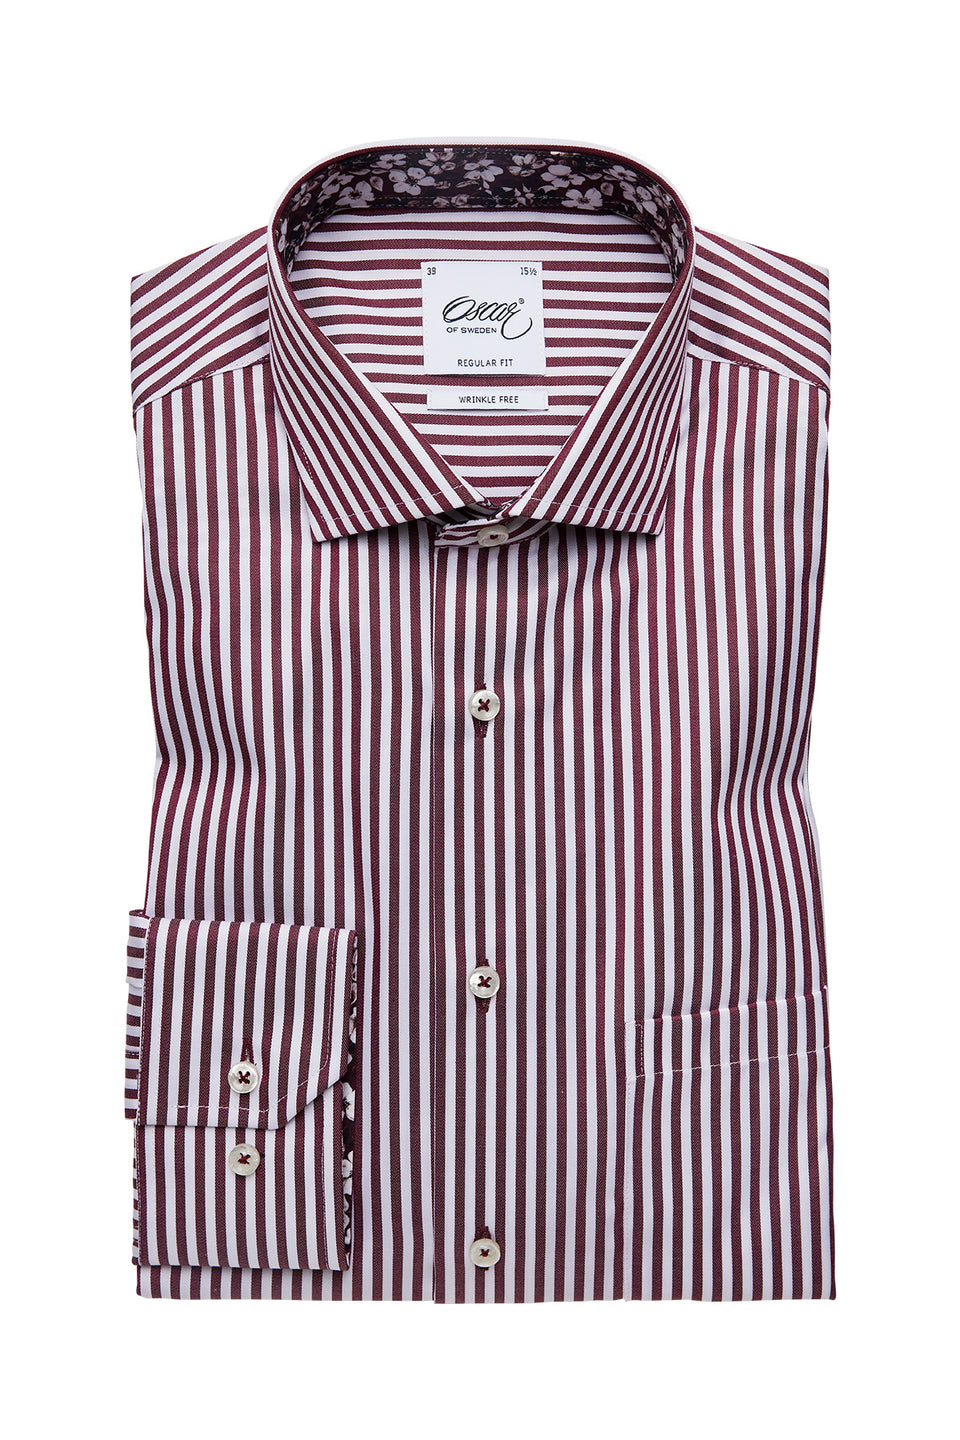 Burgundy striped regular fit shirt